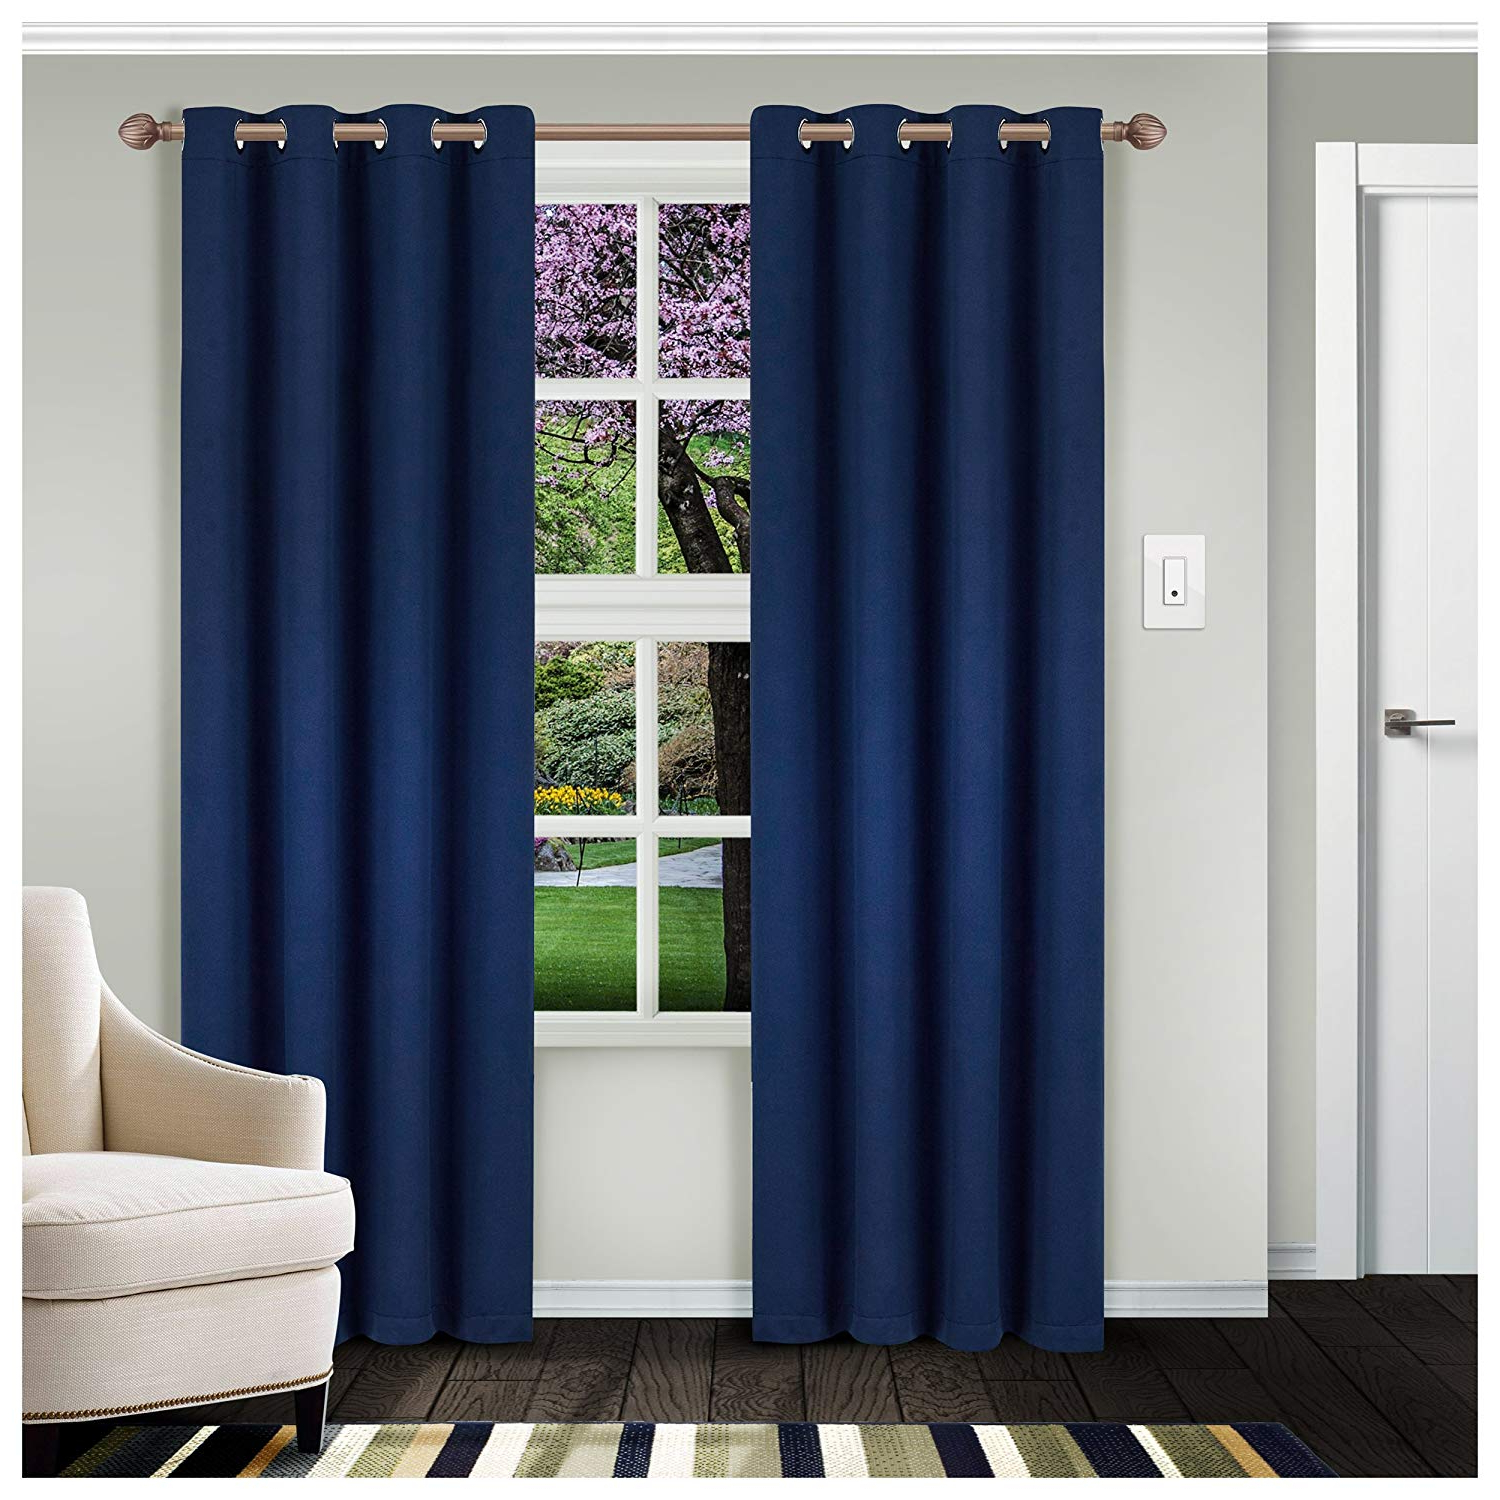 Solid Insulated Thermal Blackout Curtain Panel Pairs In Most Recently Released Superior Solid Blackout Curtain Set Of 2, Thermal Insulated Panel Pair With  Grommet Top Header, Elegant Solid Room Darkening Drapes, Available In  (View 11 of 20)